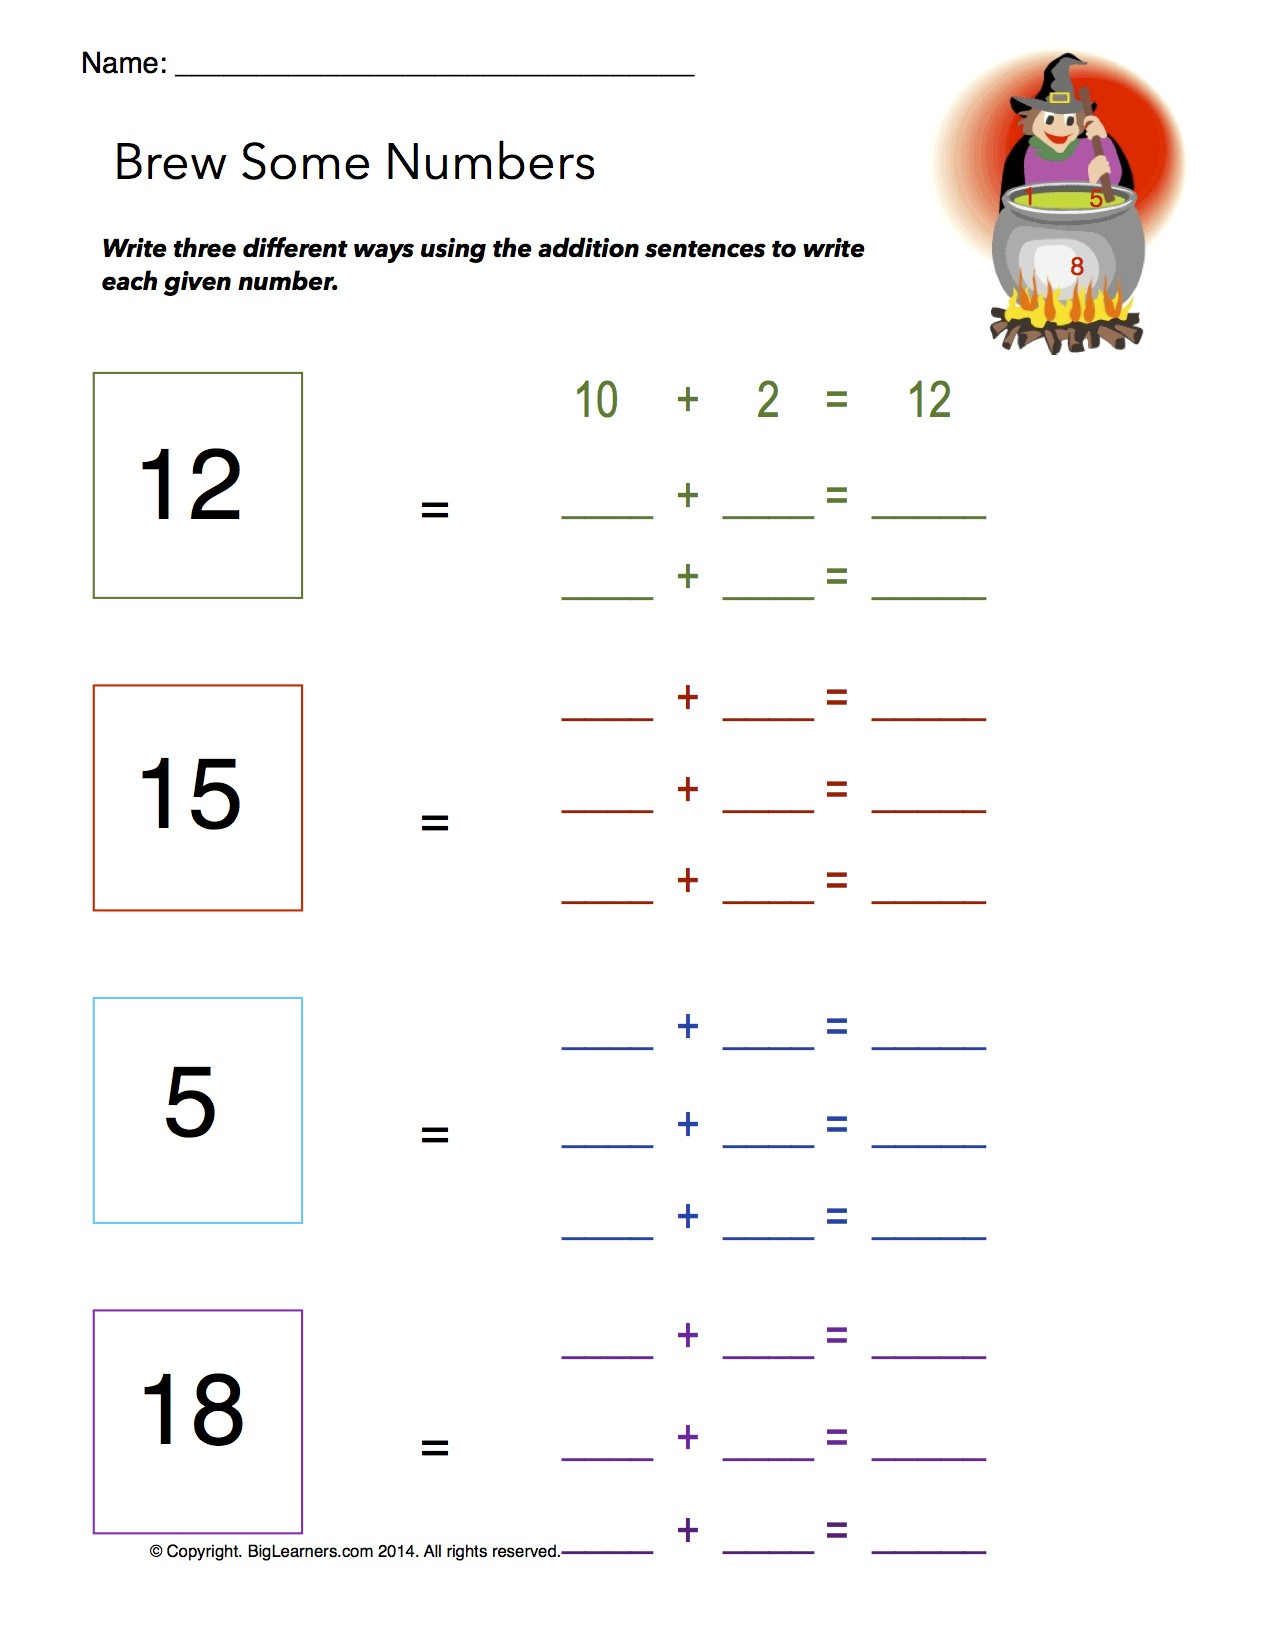 Preview image for worksheet with title Brew Some Numbers